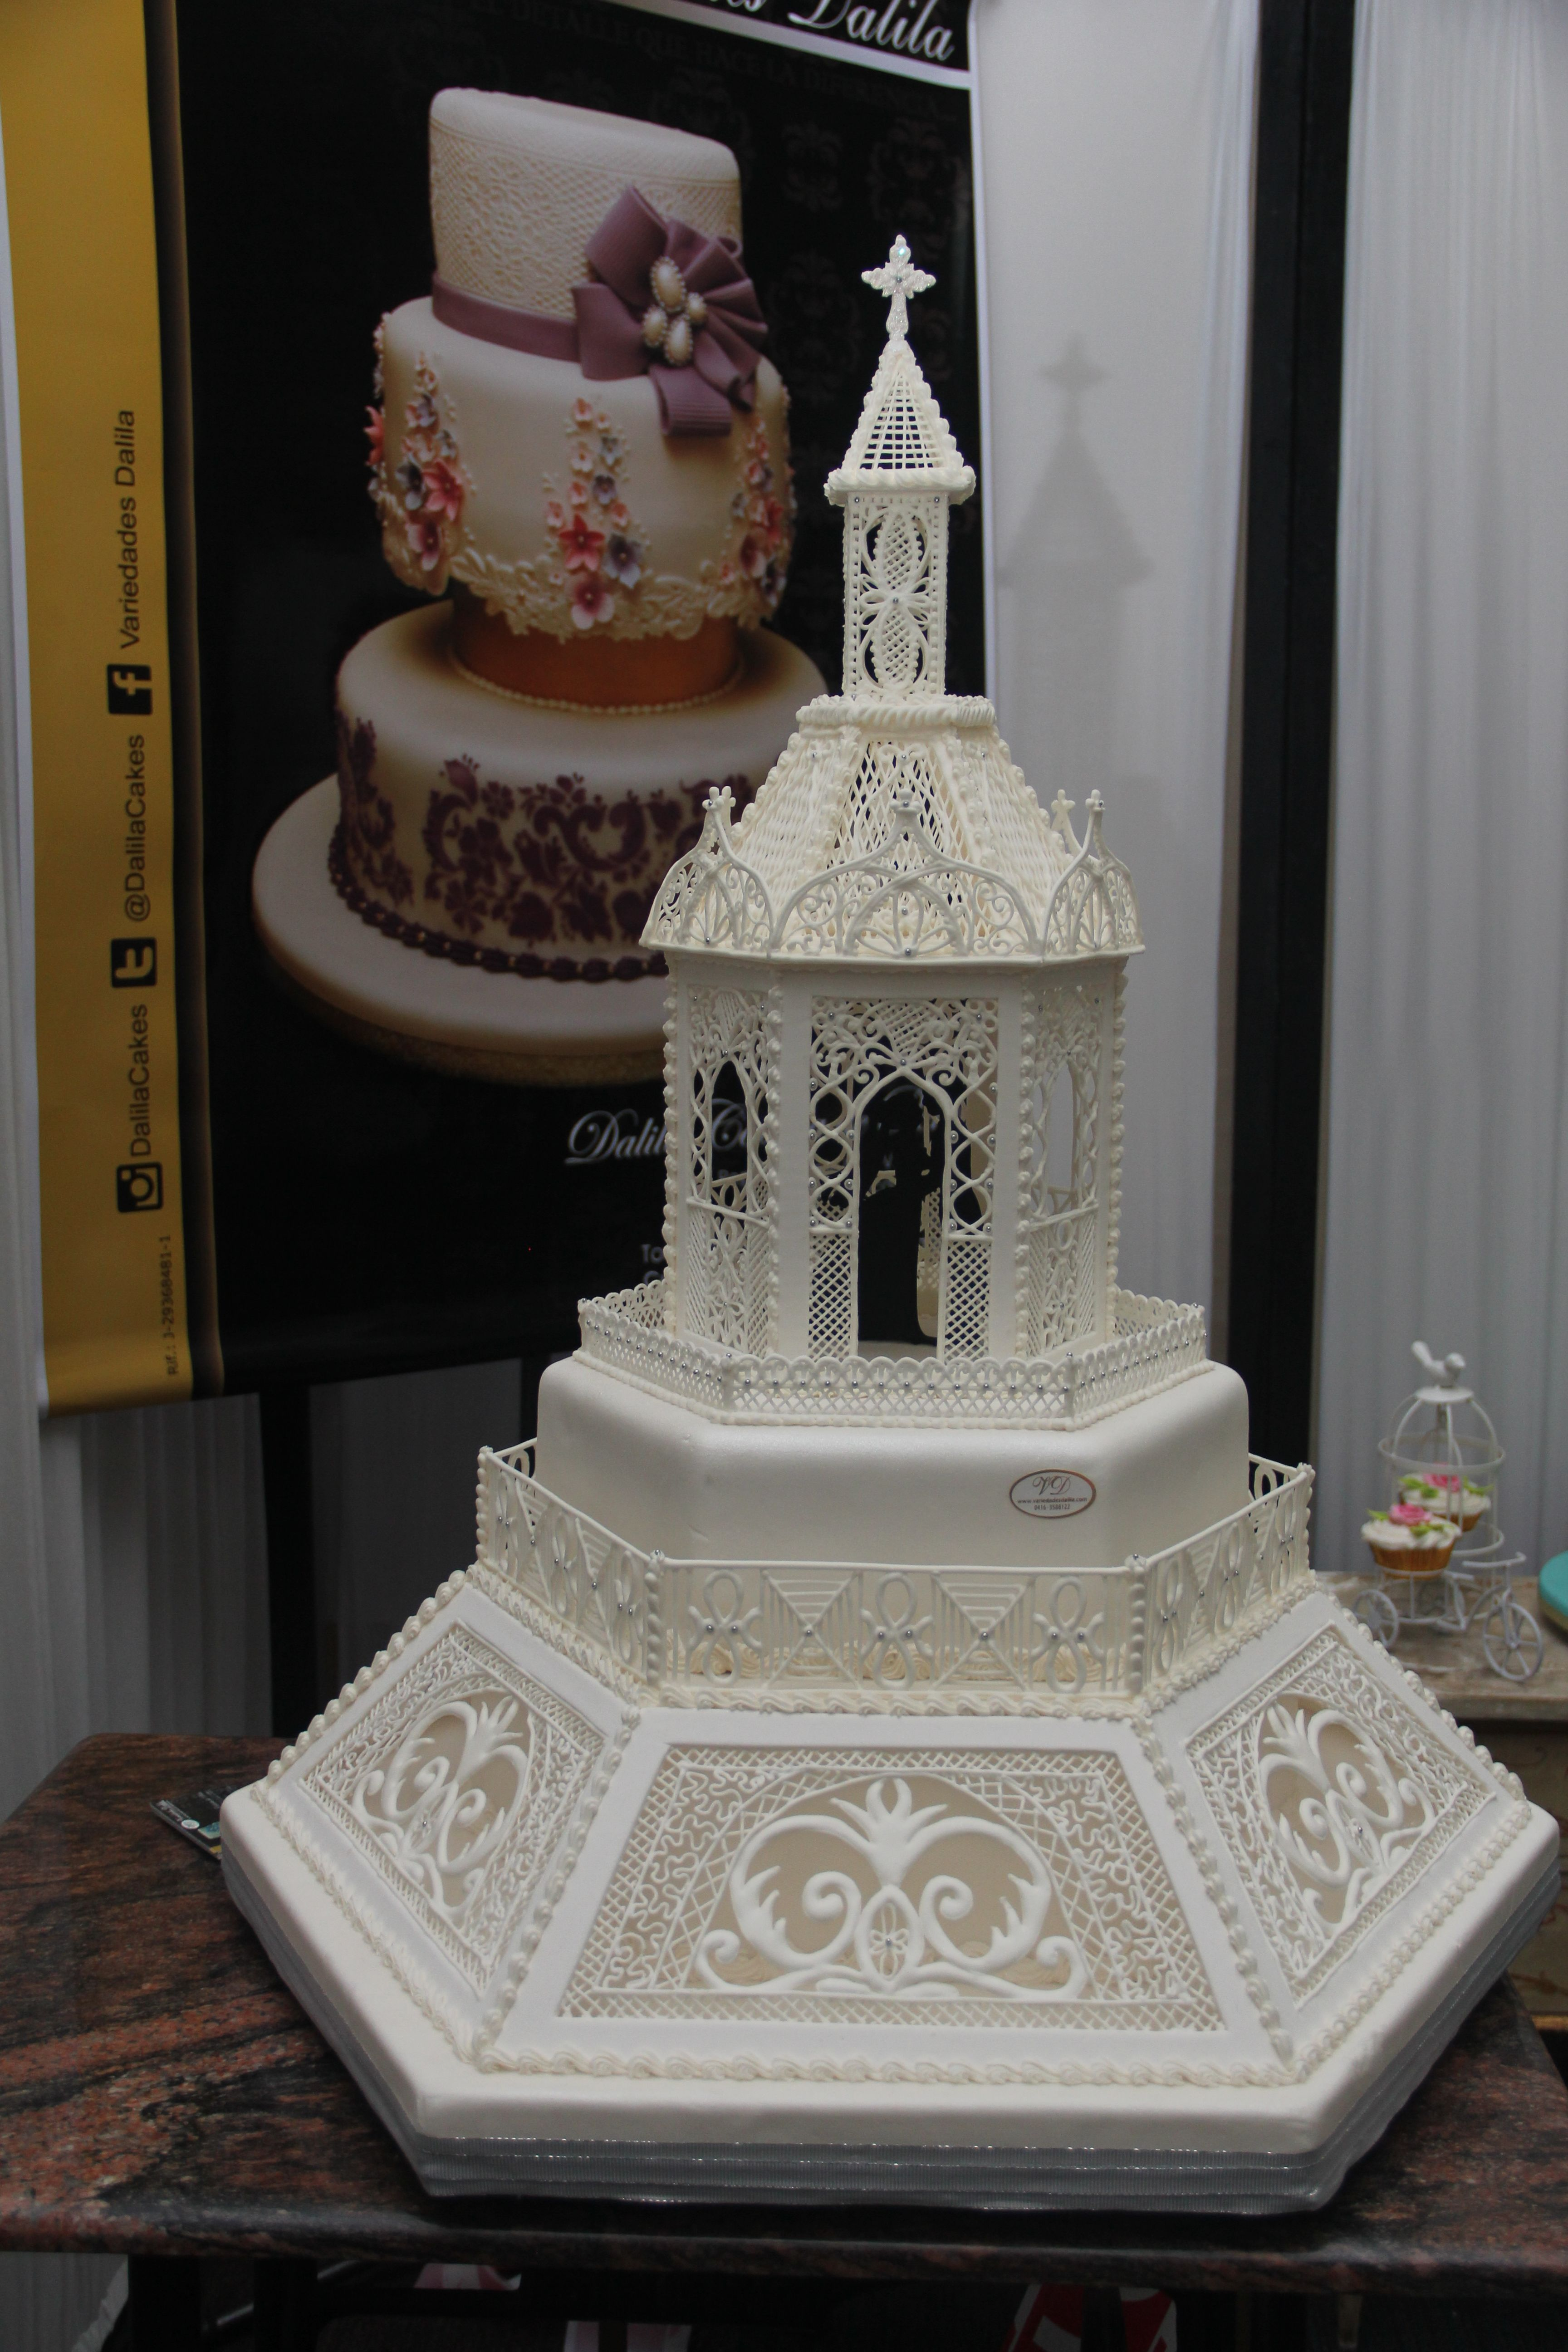 All Decoration And Chapel Made In Royal Icing Lambeth